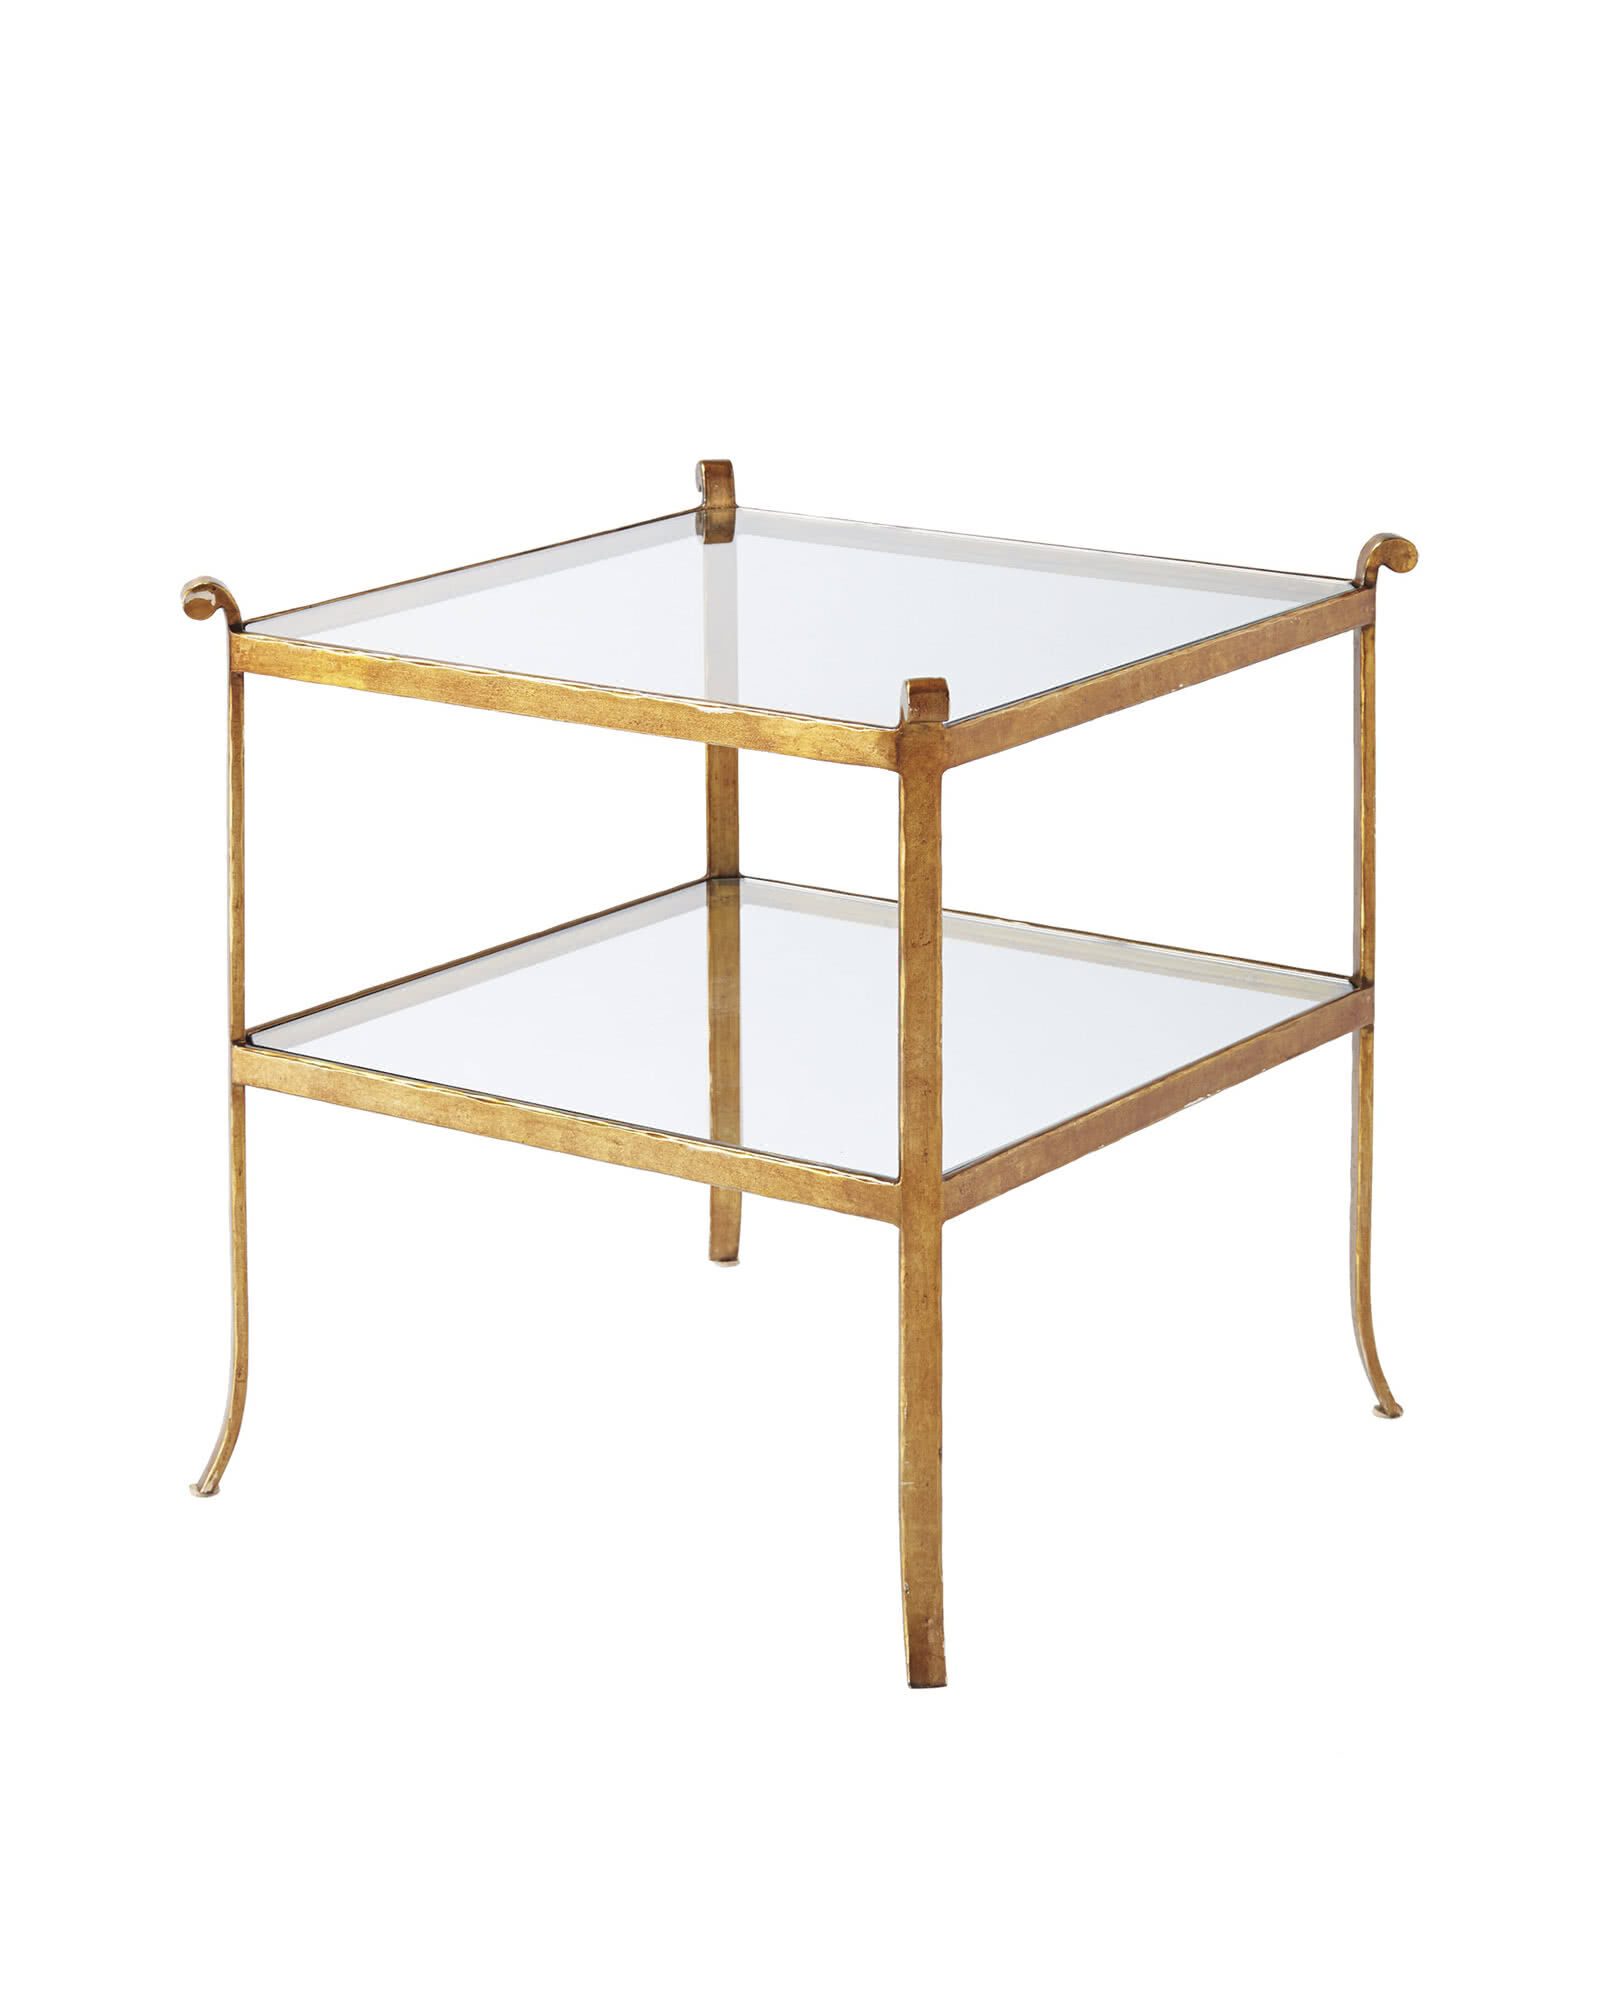 St. Germain Glass Side Table,